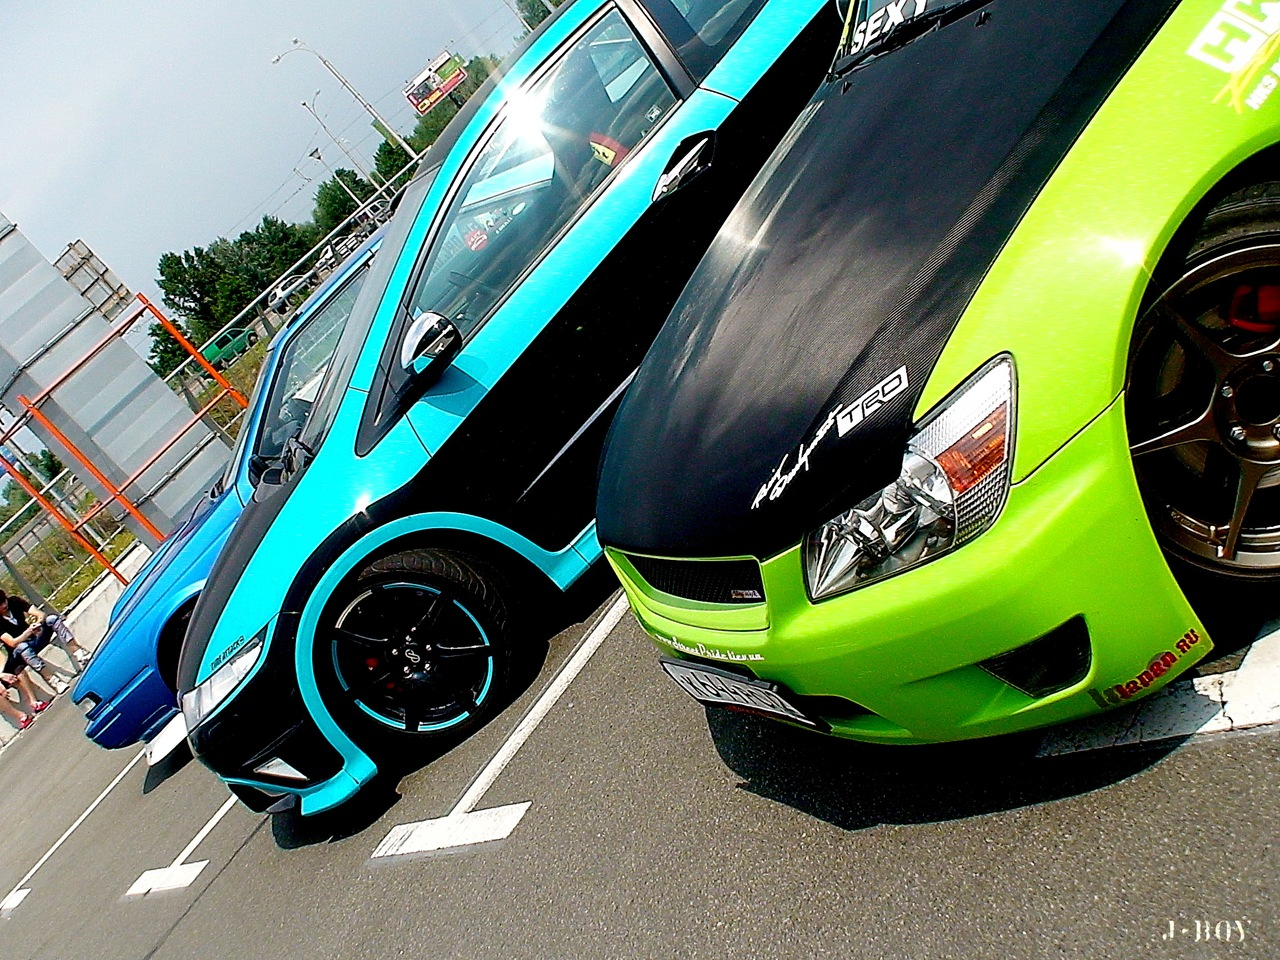 japanese cars versus european cars As the german brands successfully exploited rising demand for smaller premium cars, the japanese were  unlike their european rivals, the three japanese car giants.